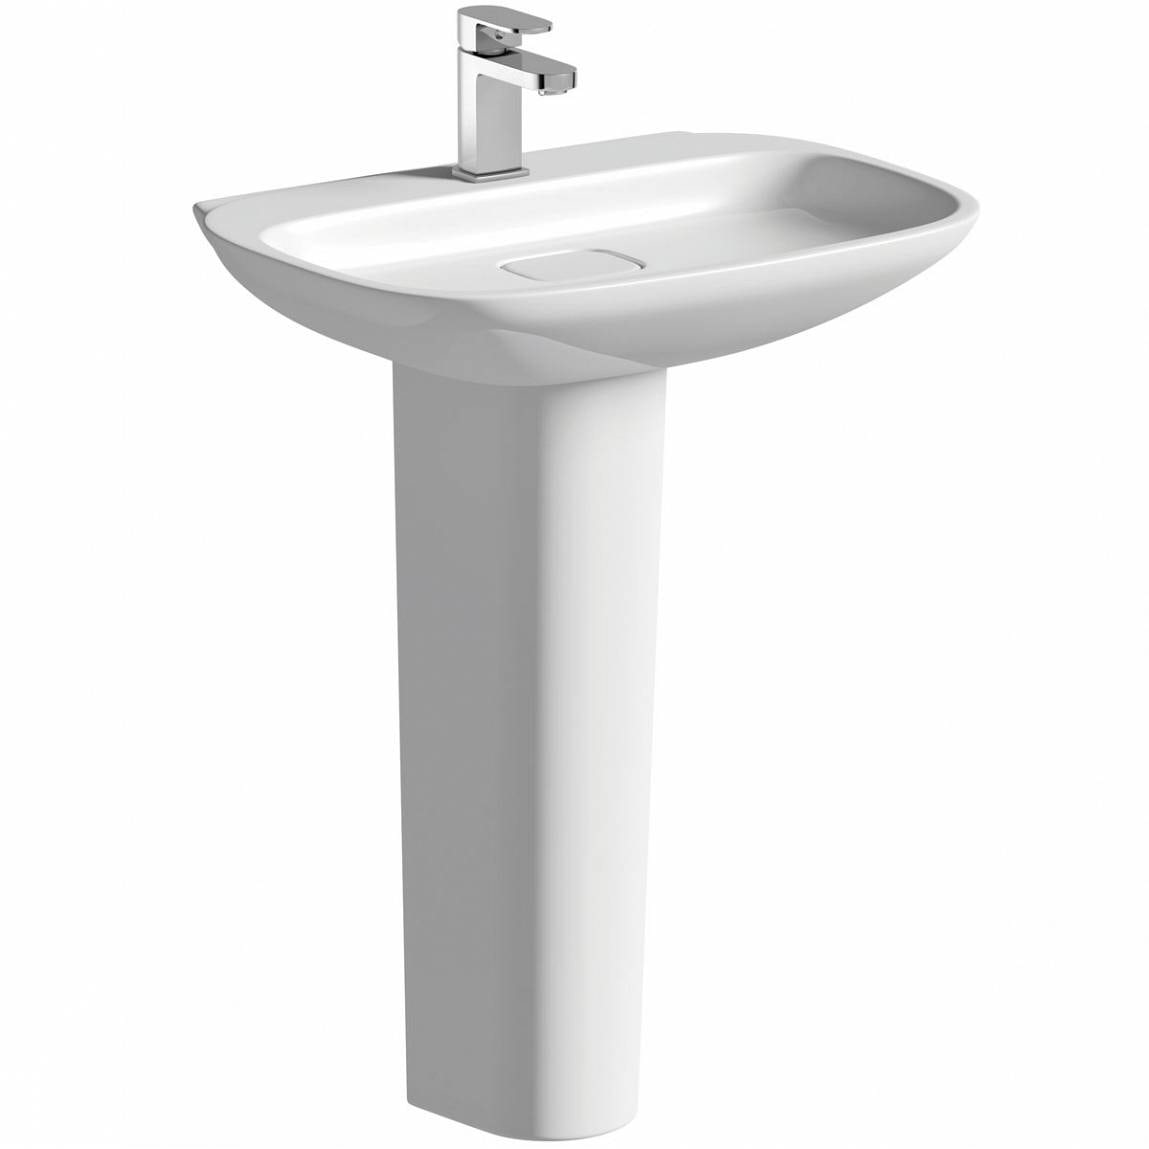 Mode Heath 1 tap hole full pedestal basin 600mm with waste